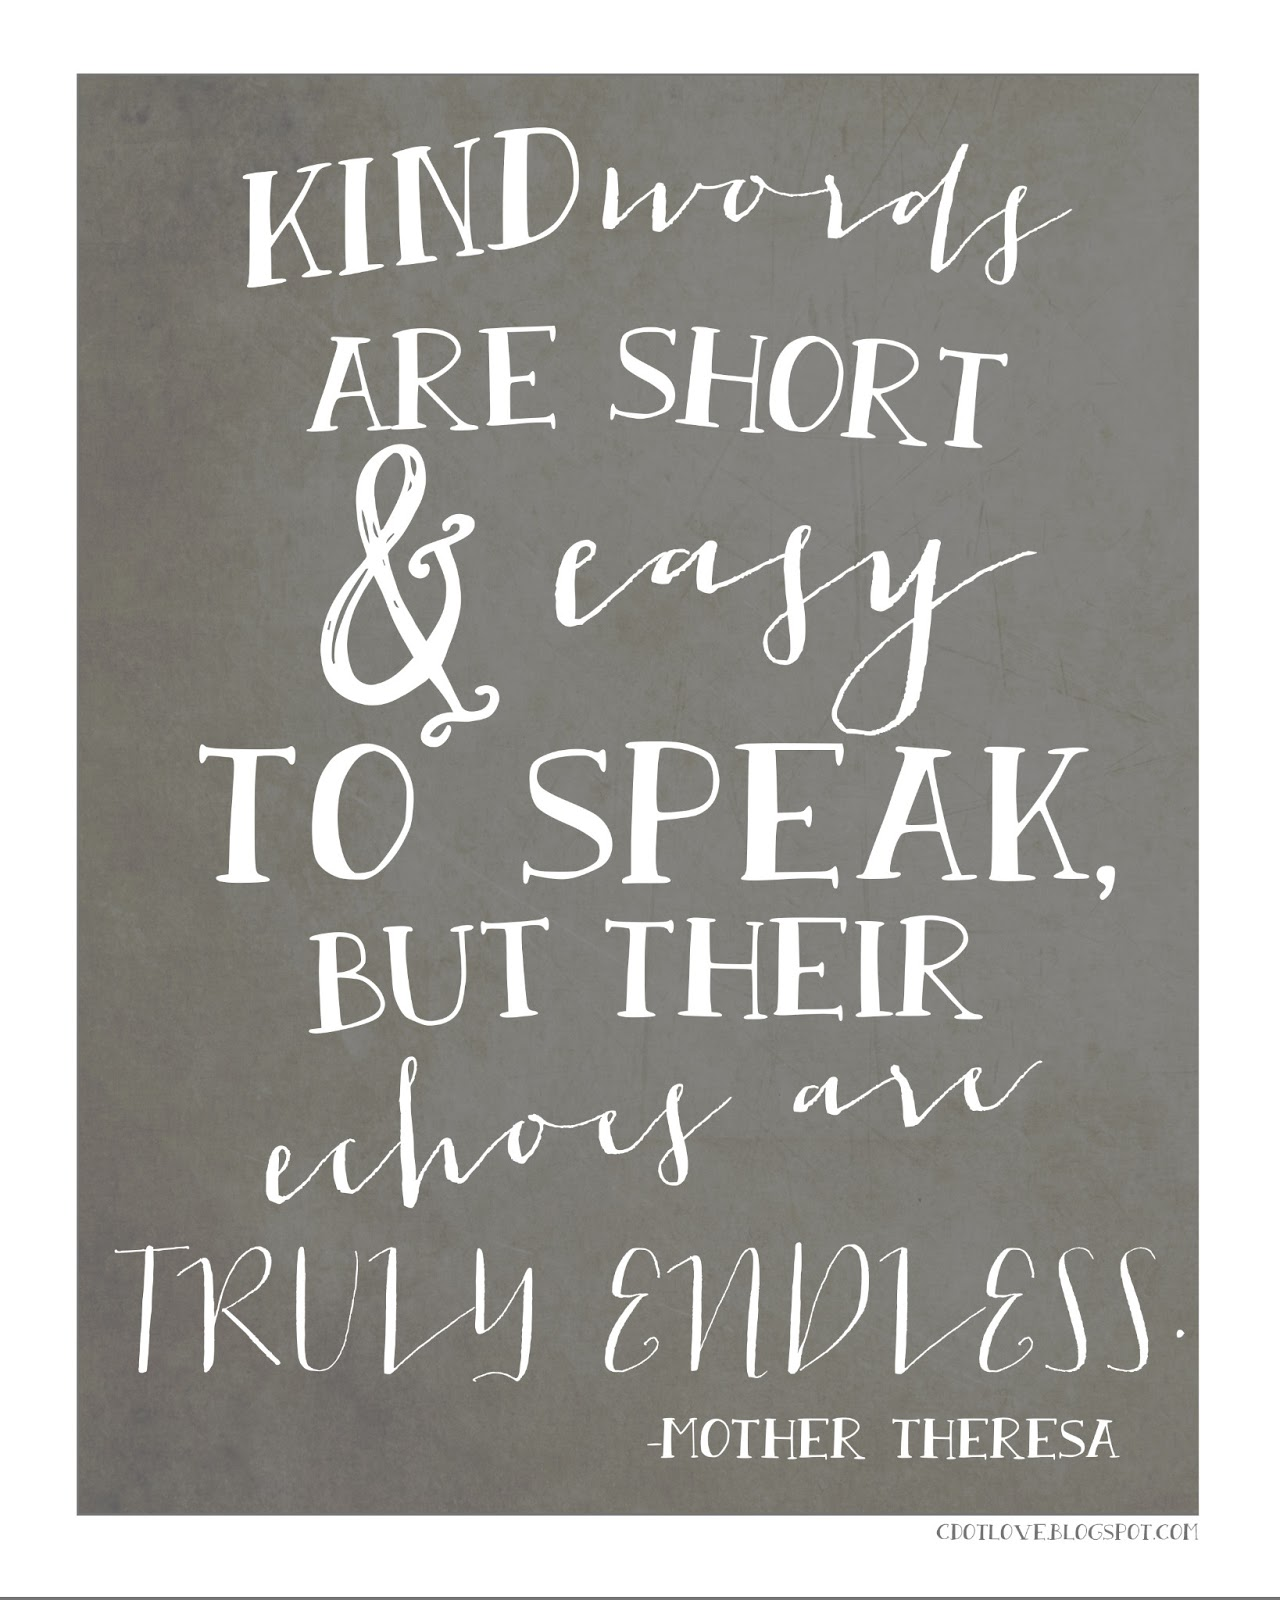 Short And Simple Quotes: Kind Words Are Short & Easy To Speak, But Their Echoes Are